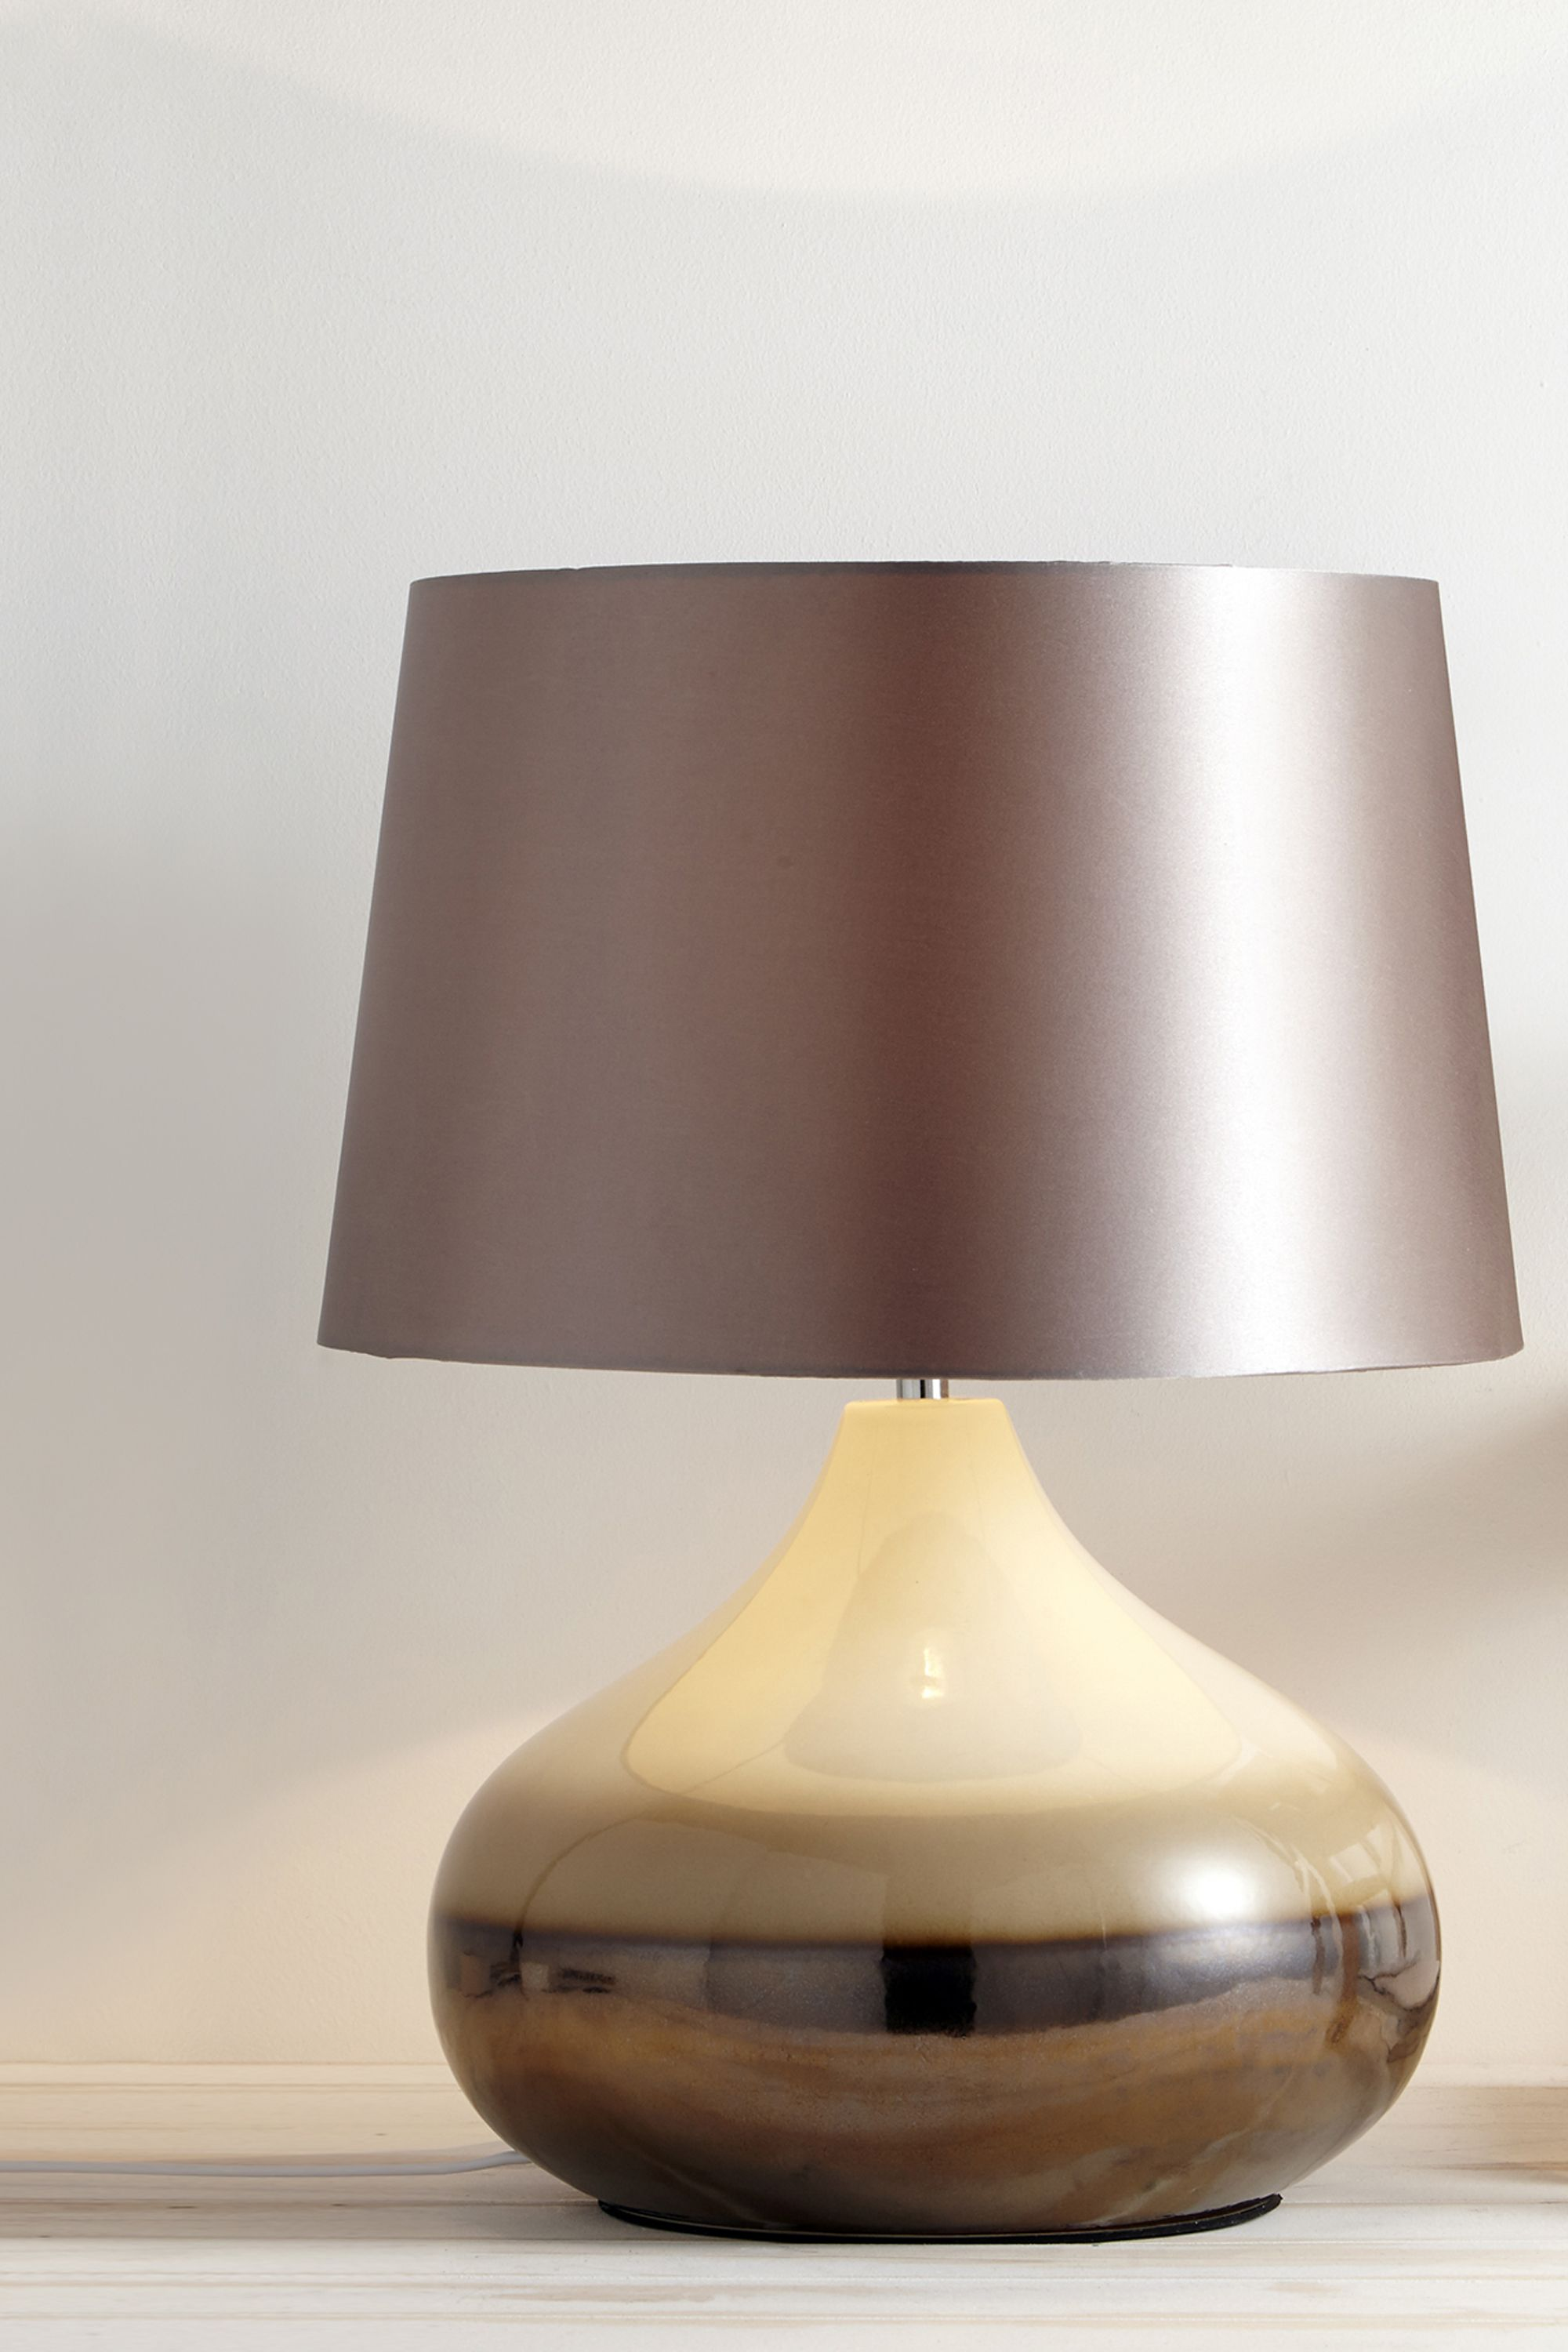 Ruben ceramic table lamp bhs lampen pinterest ceramic ruben ceramic table lamp bhs mozeypictures Image collections